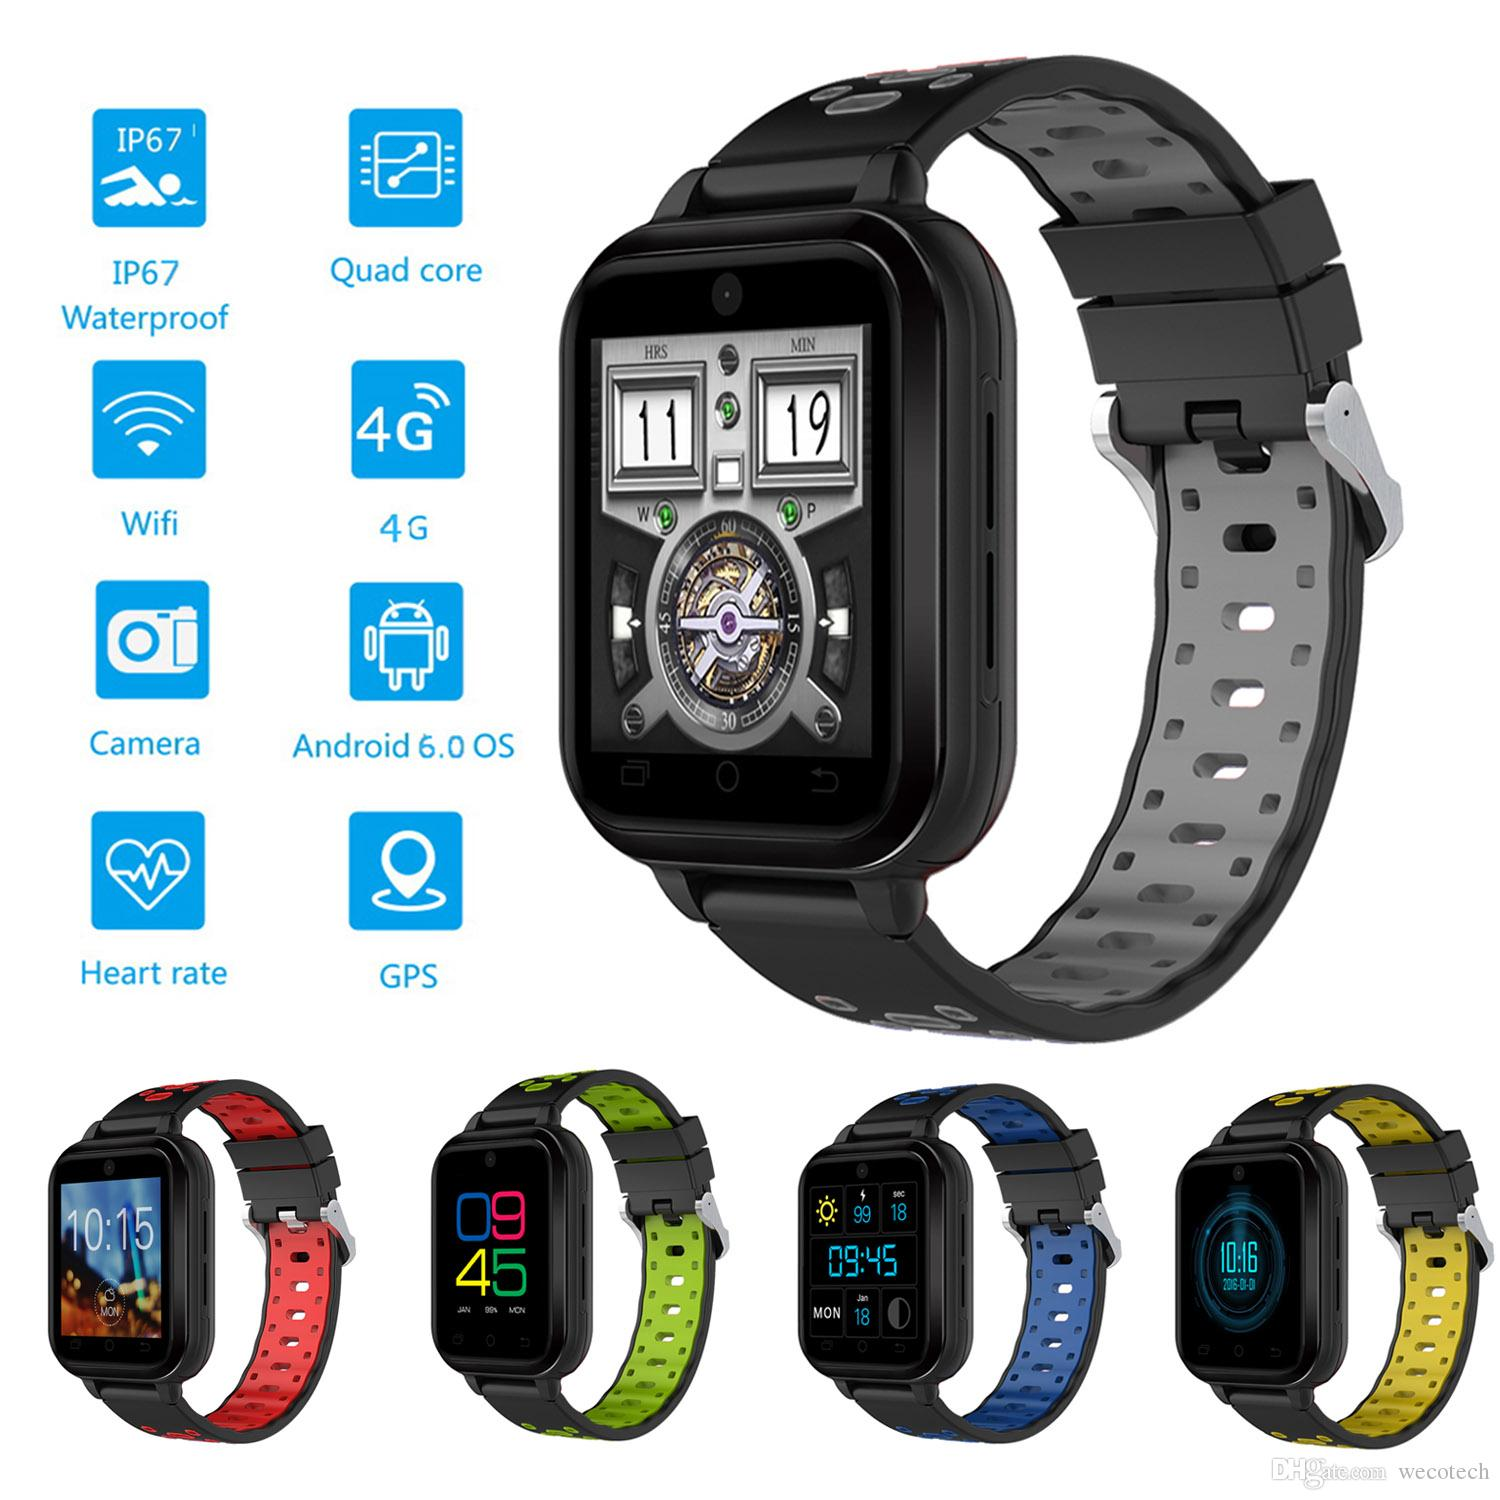 accessories smartphones com for watches smart rd dp watch phones phone cell amazon bluetooth padgene